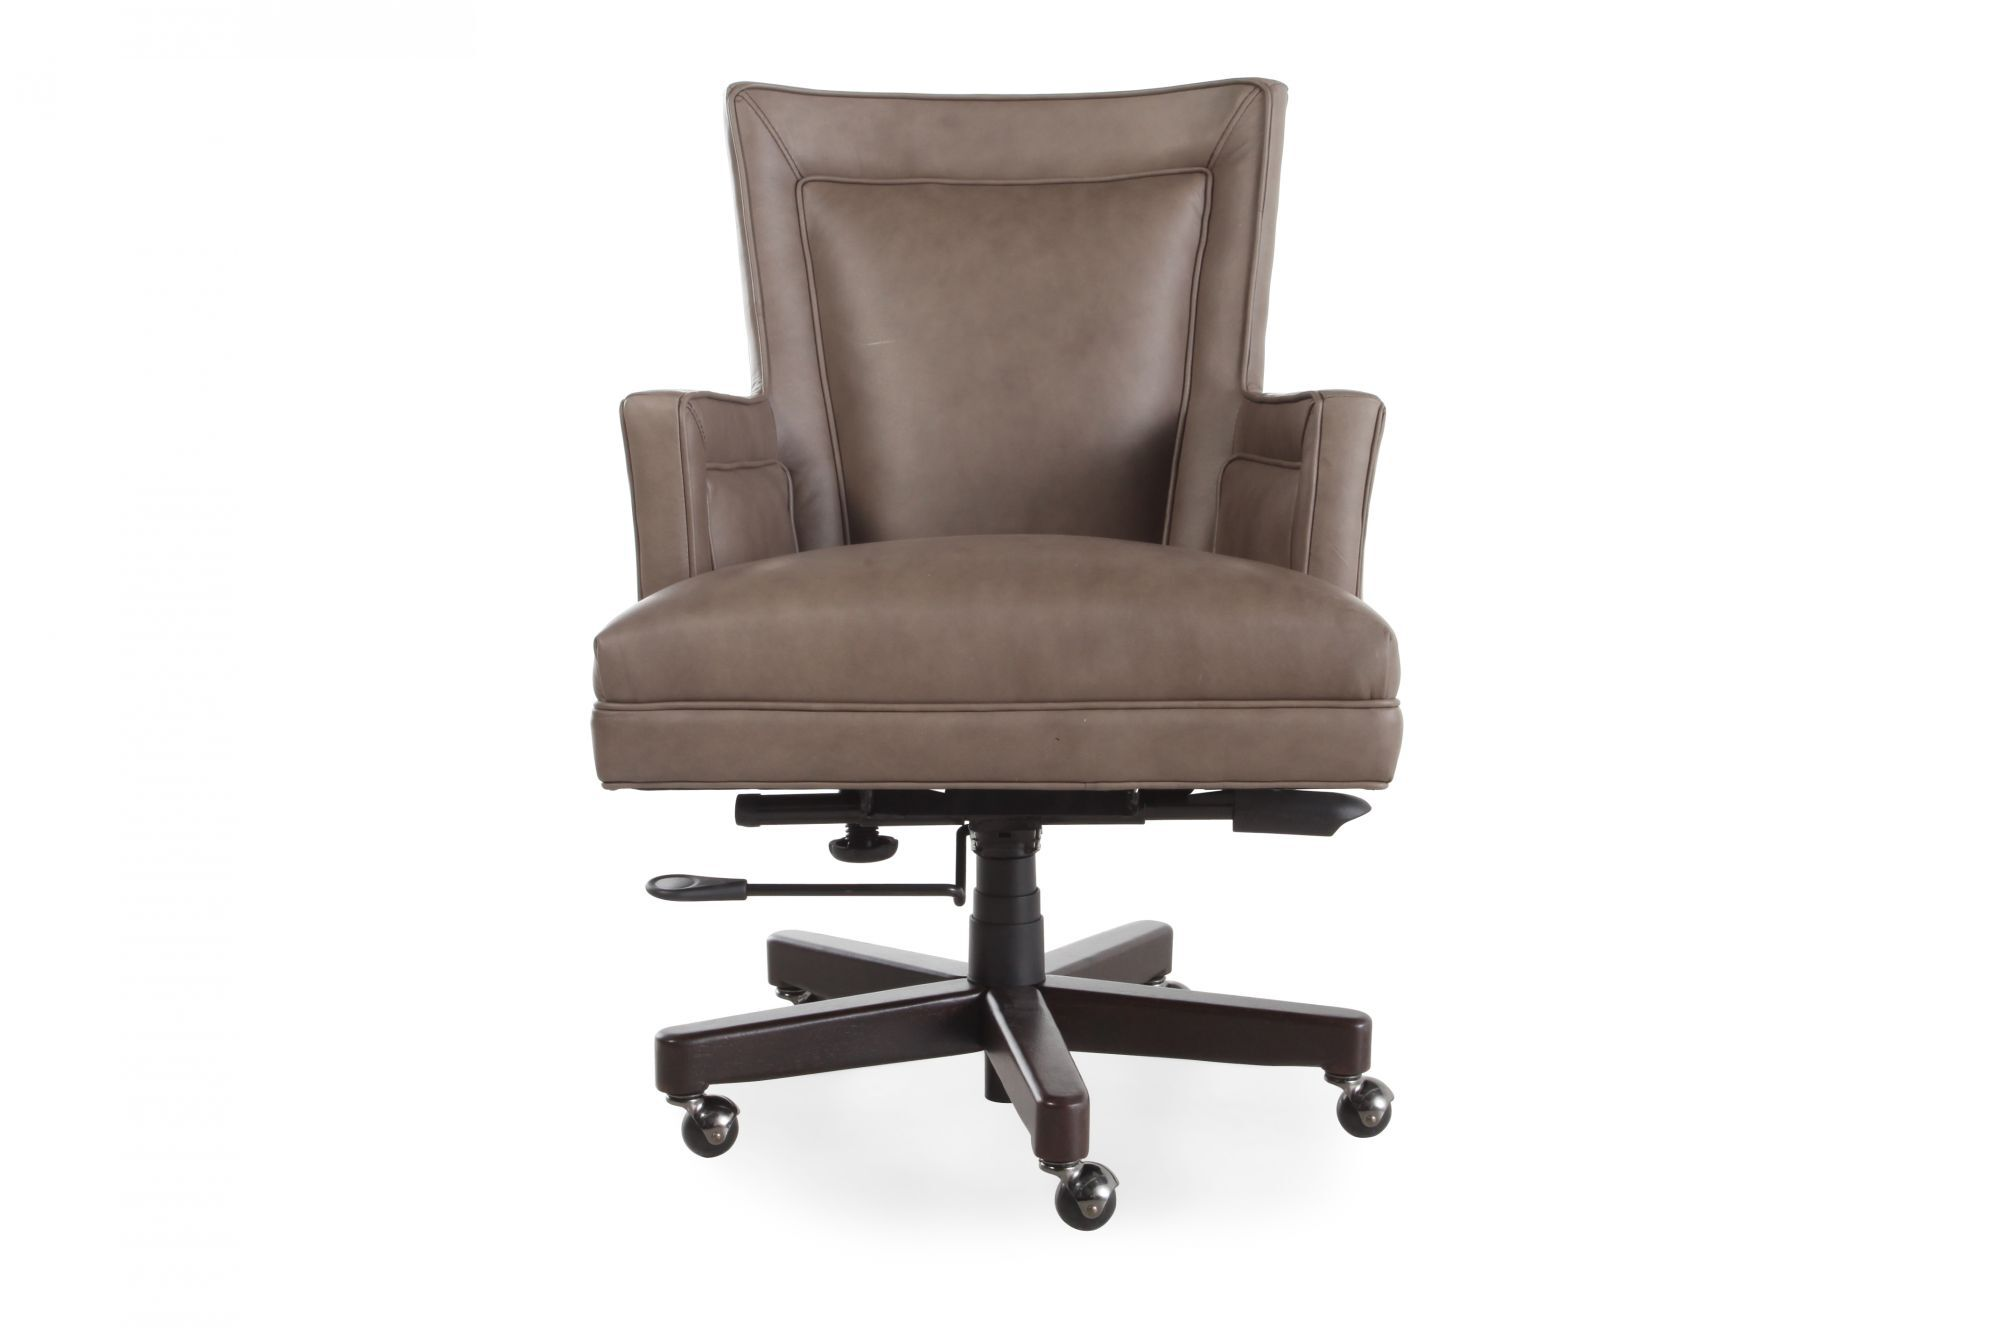 Leather Desk Chairu0026nbspin Medium Brown Brown Leather Desk Chair6